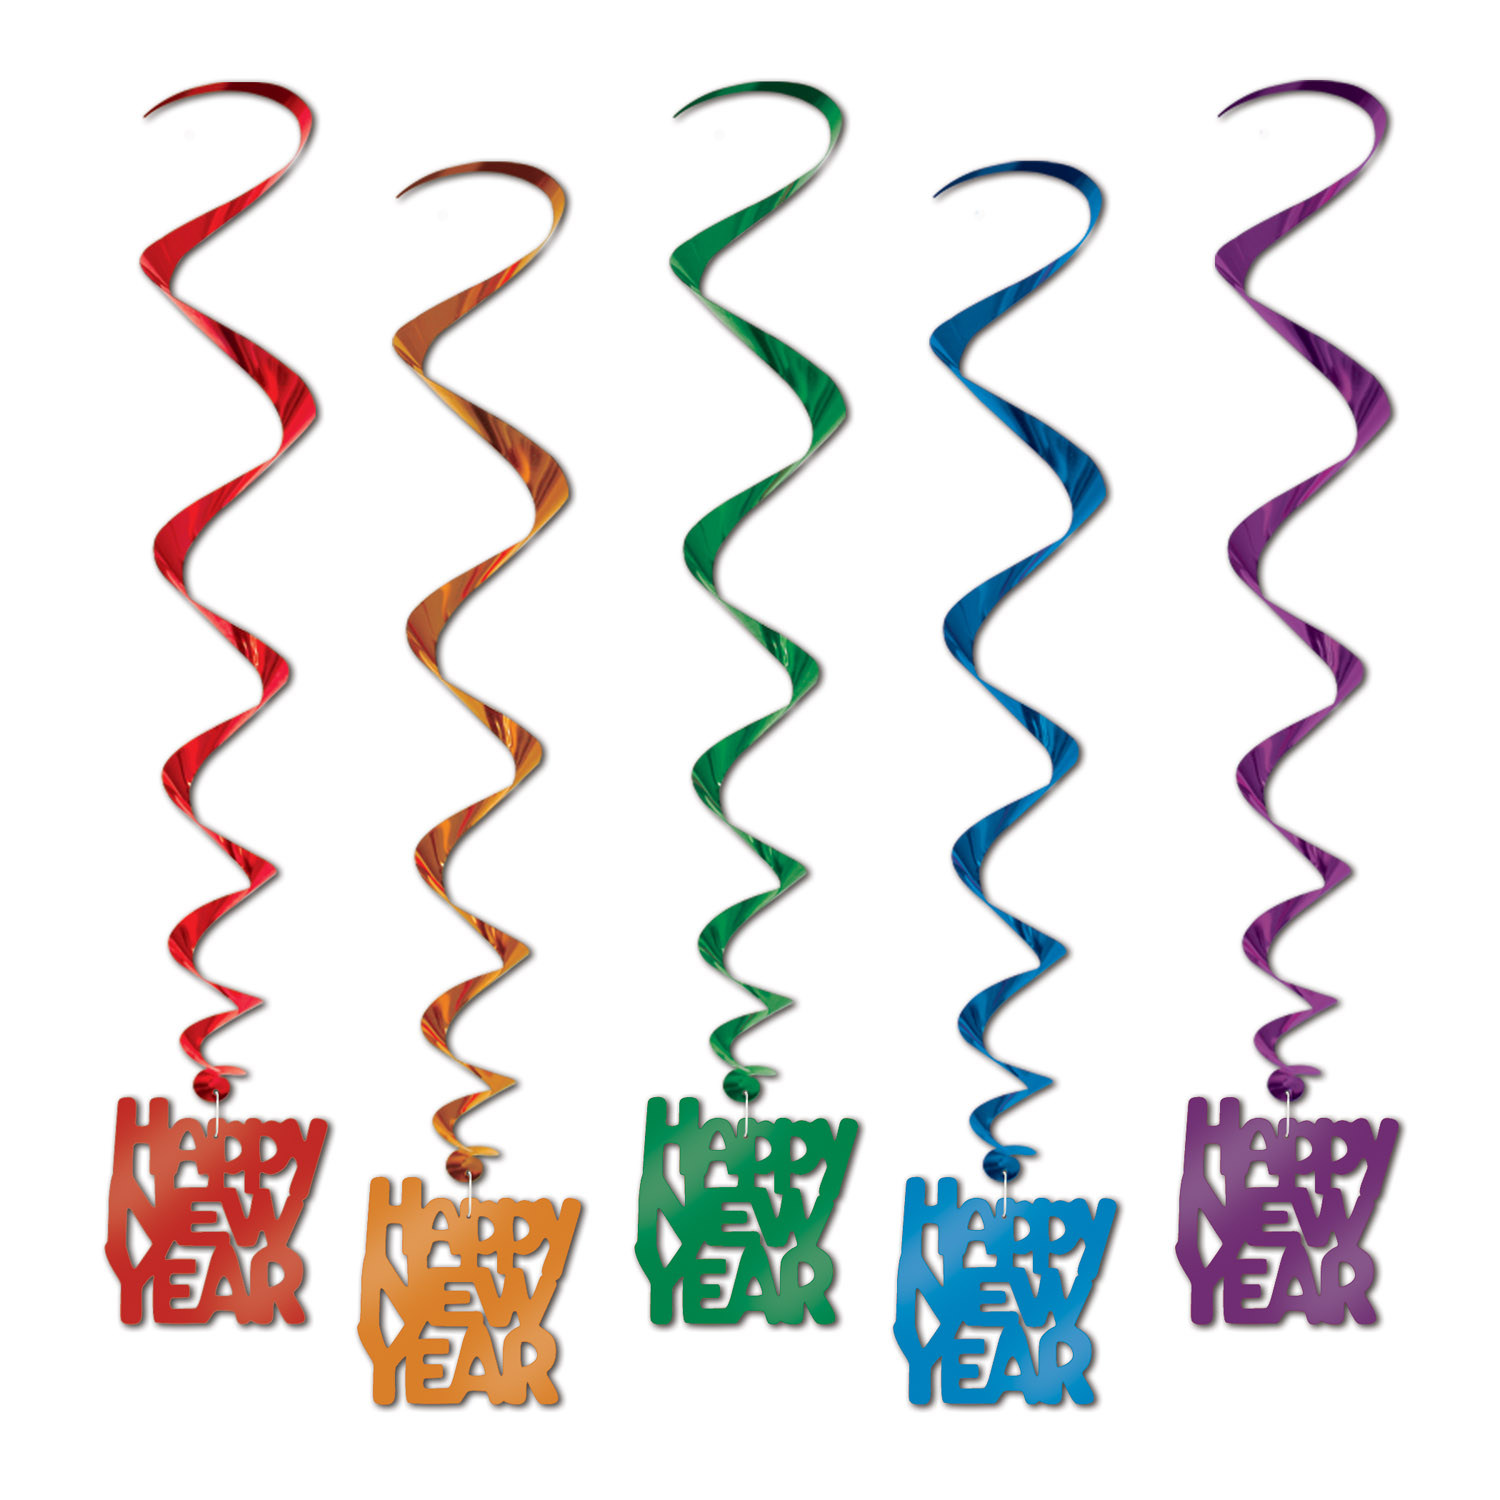 Red, Orange, green, blue, and purple Happy New Year Metallic whirls.